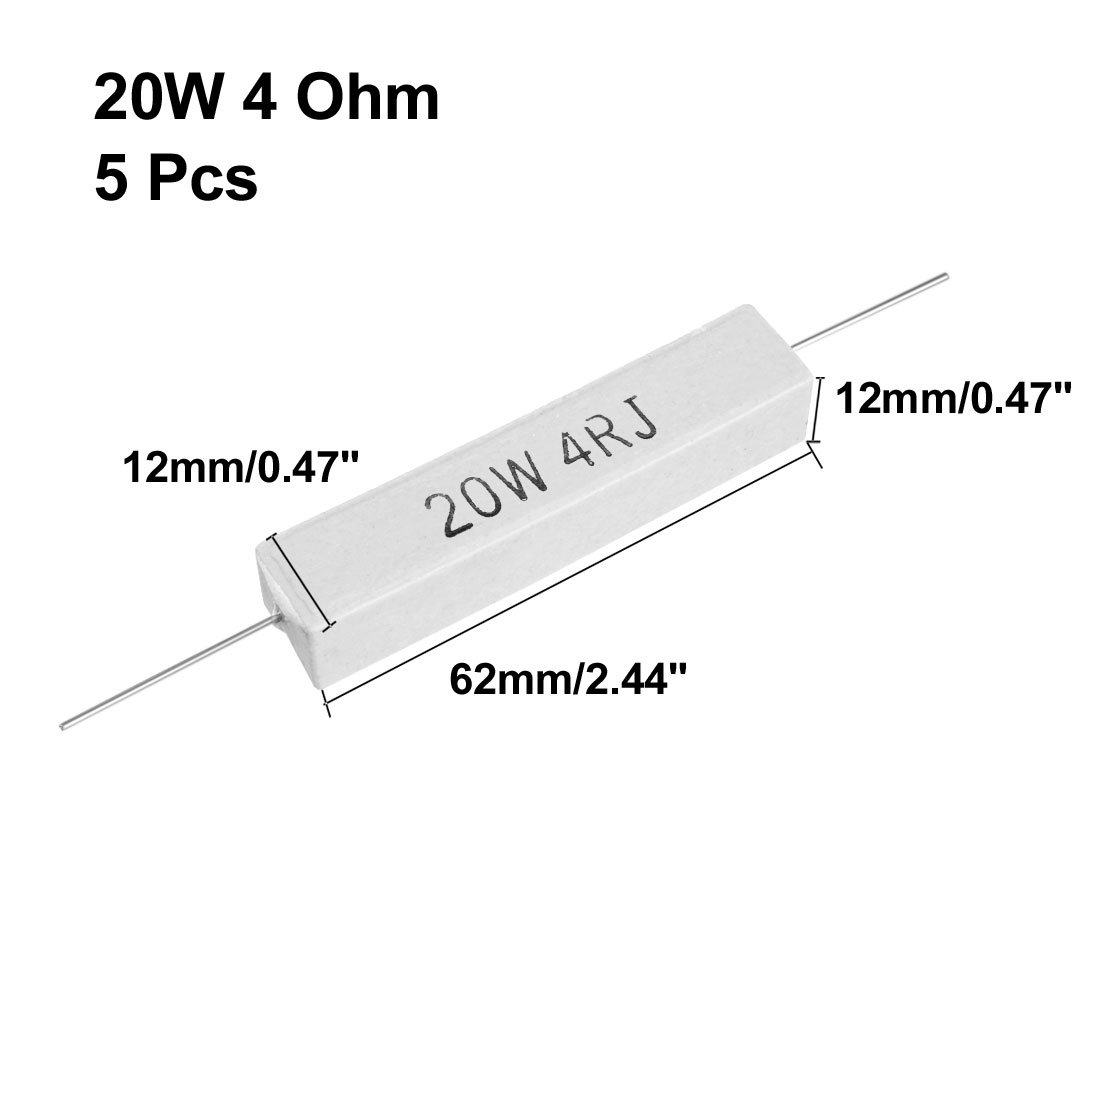 uxcell 20W 1 Ohm Power Resistor Ceramic Cement Resistor Axial Lead White 2pcs